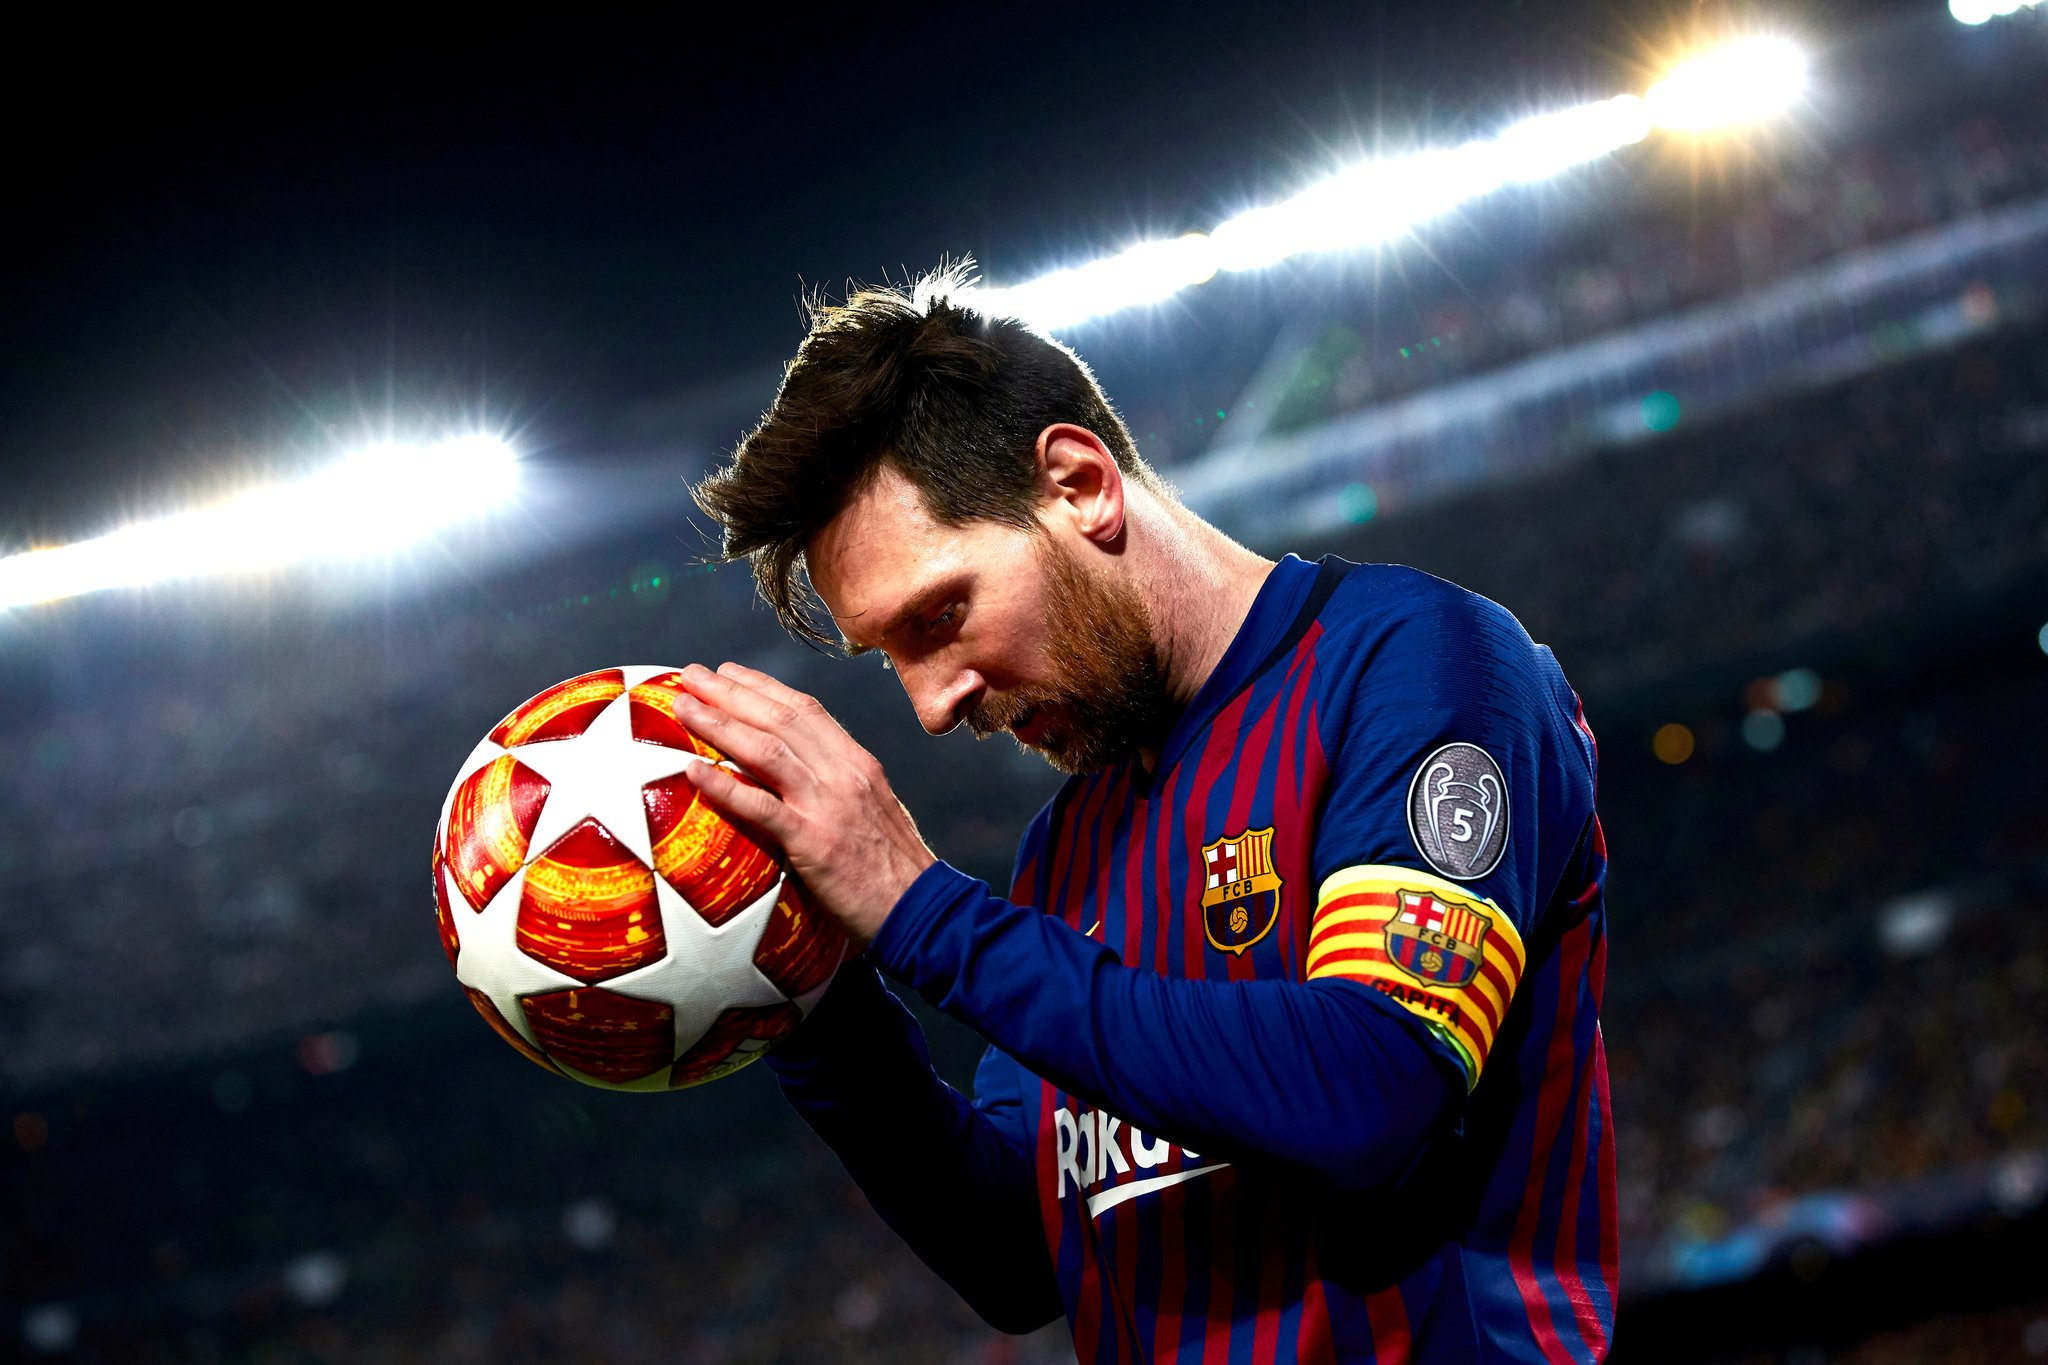 Lionel Messi Net Worth 2021 in Rupees – Inside into his massive fortune